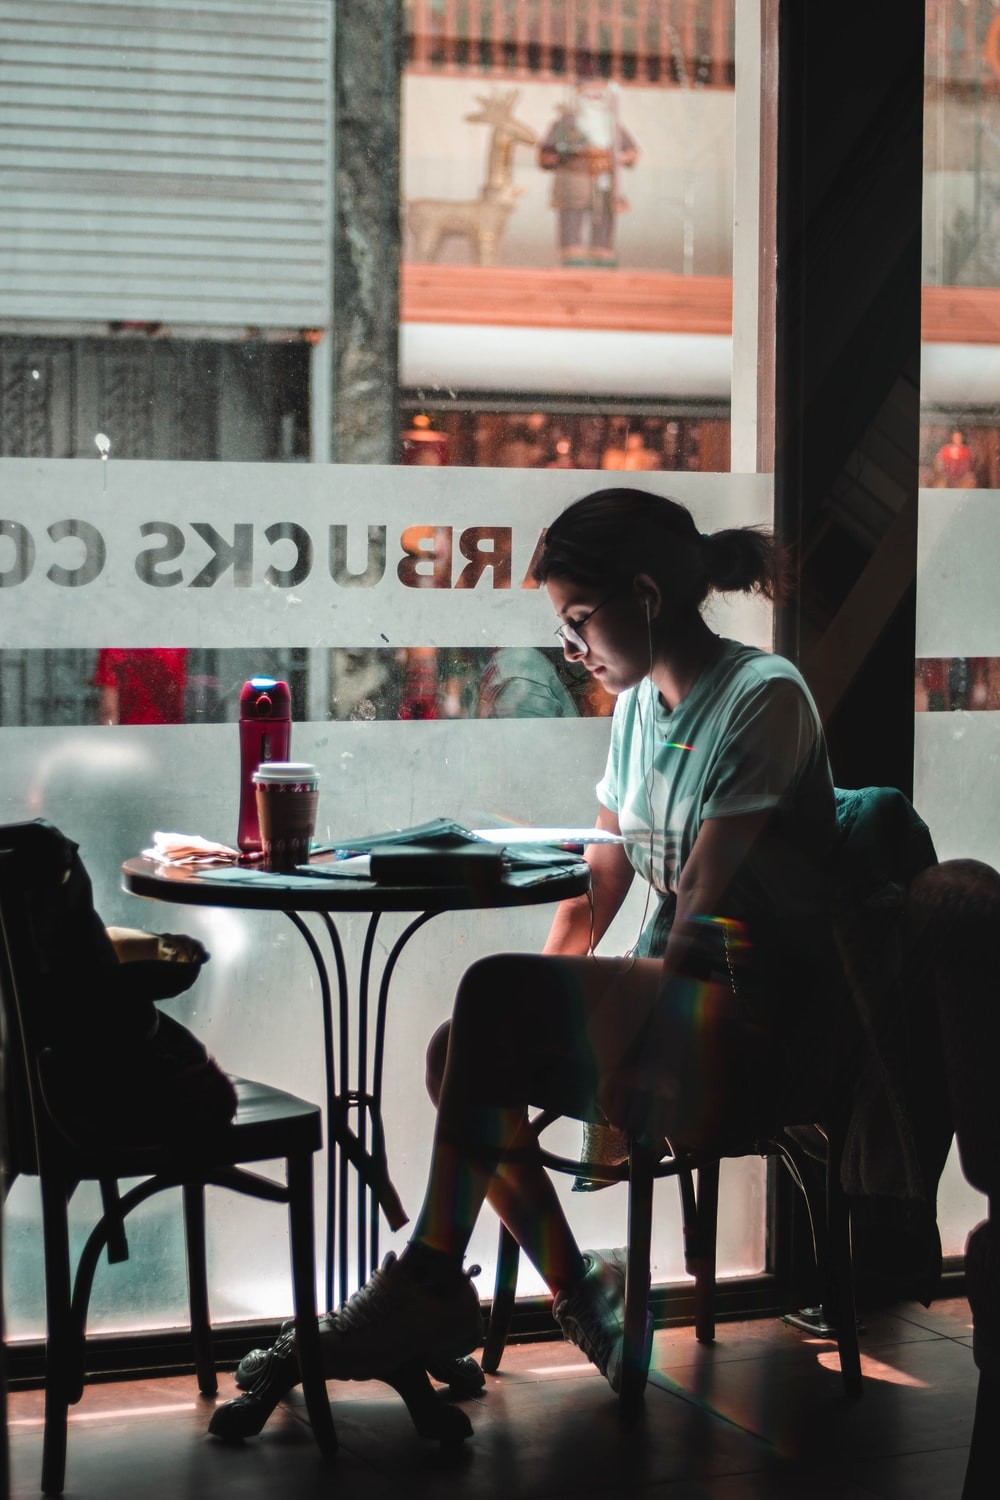 woman sitting alone by the glass window at Starbucks Cafe